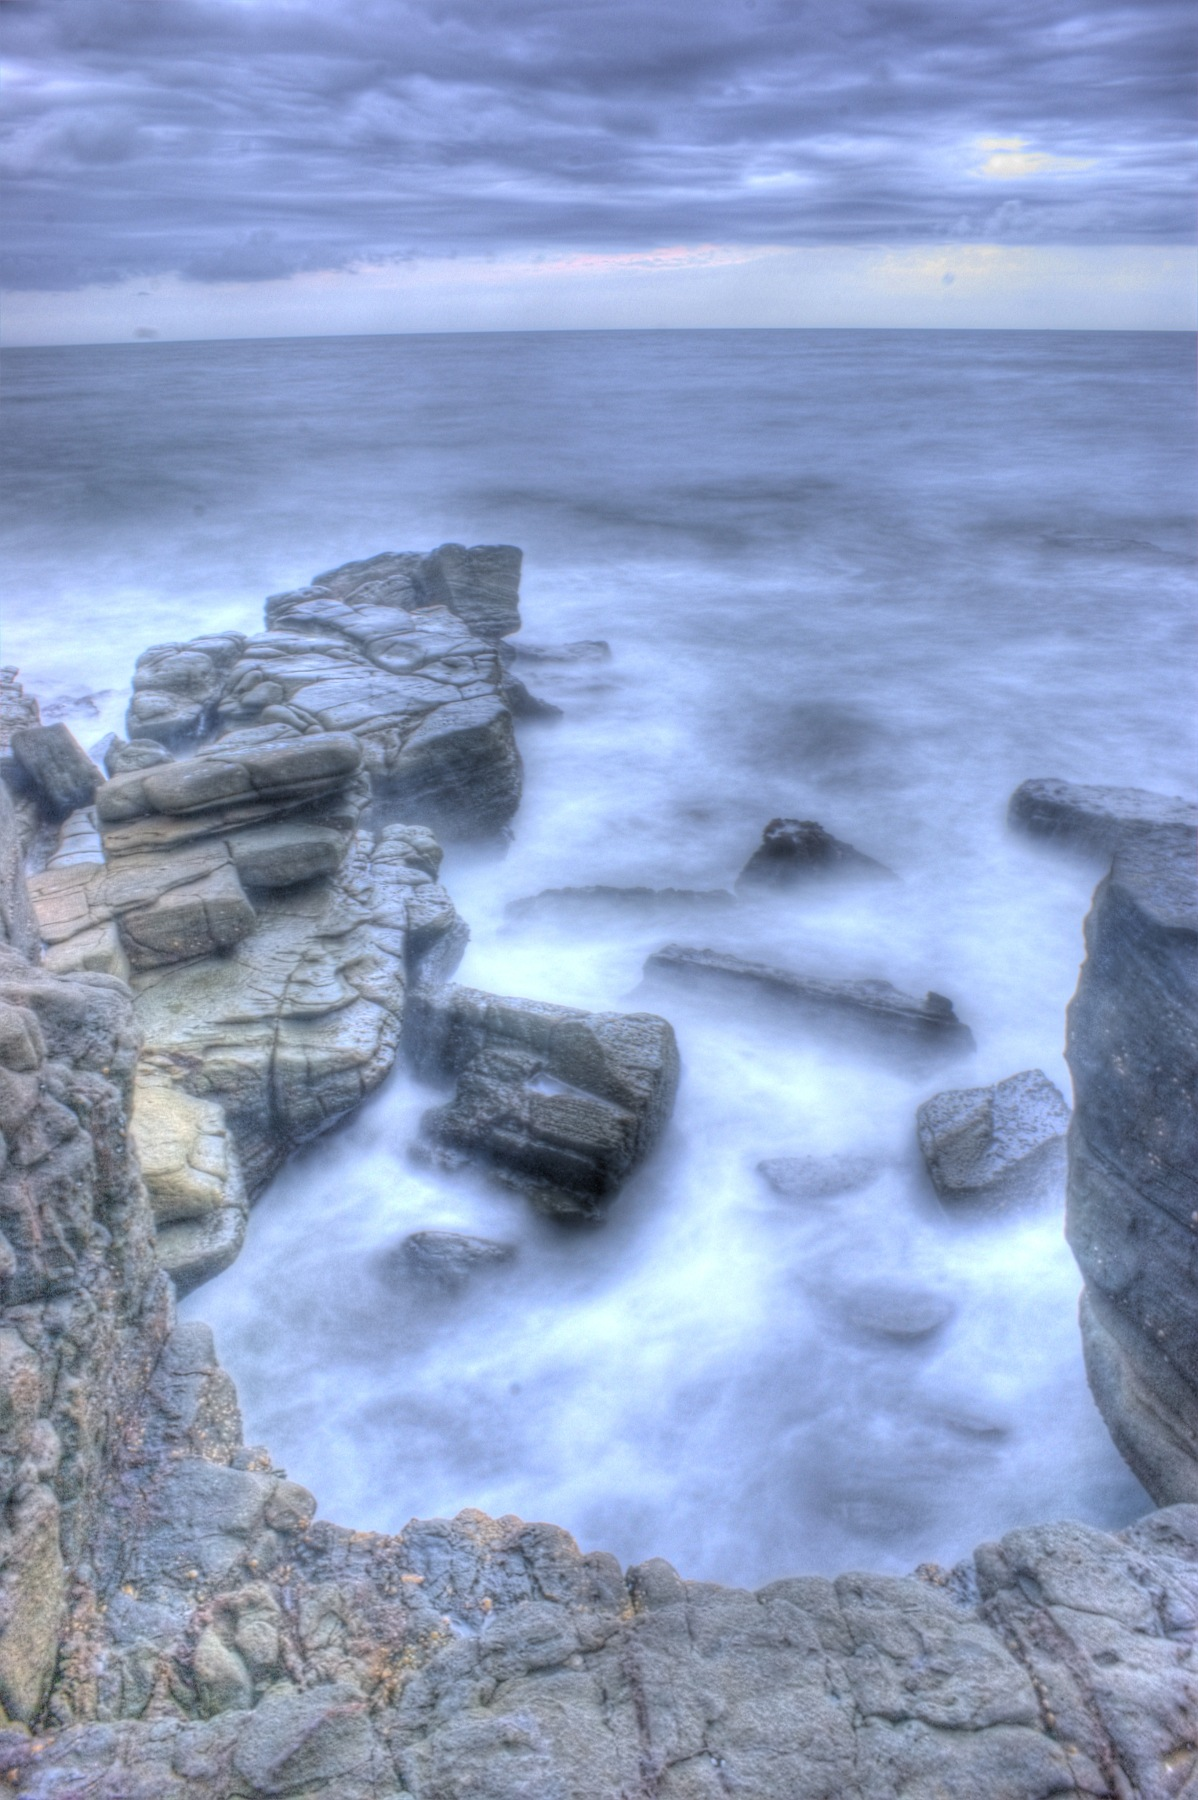 http://www.images.scottphotographics.com/shot-of-the-day/%234/On-the-rocks-Mooloolaba01.jpg